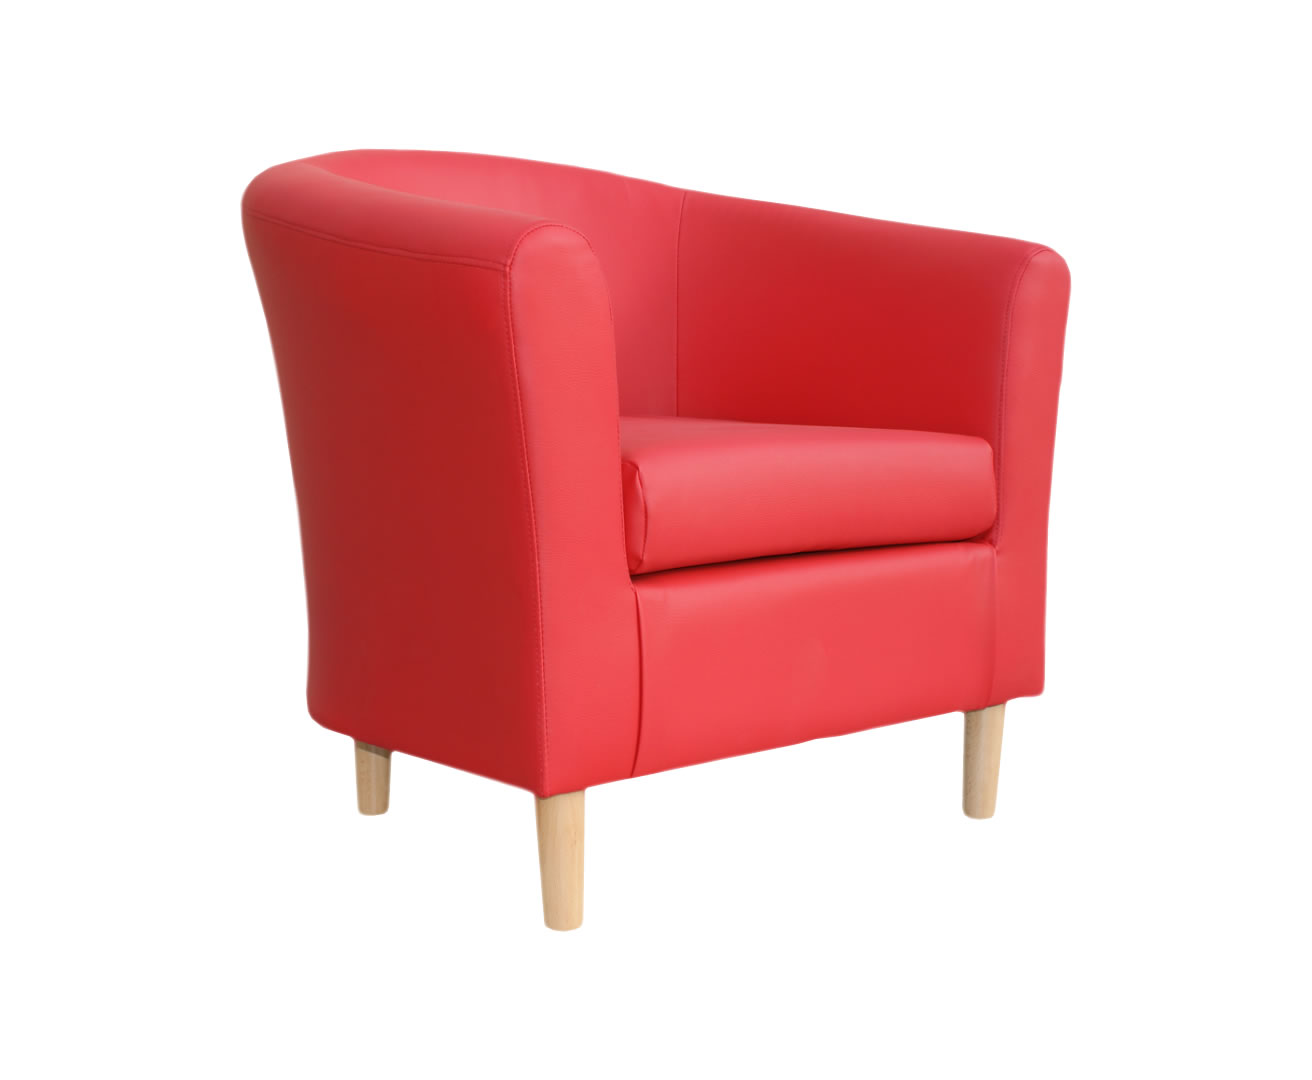 hamlet red faux leather tub chair uk delivery tempo tub chair by seconique red furniture value